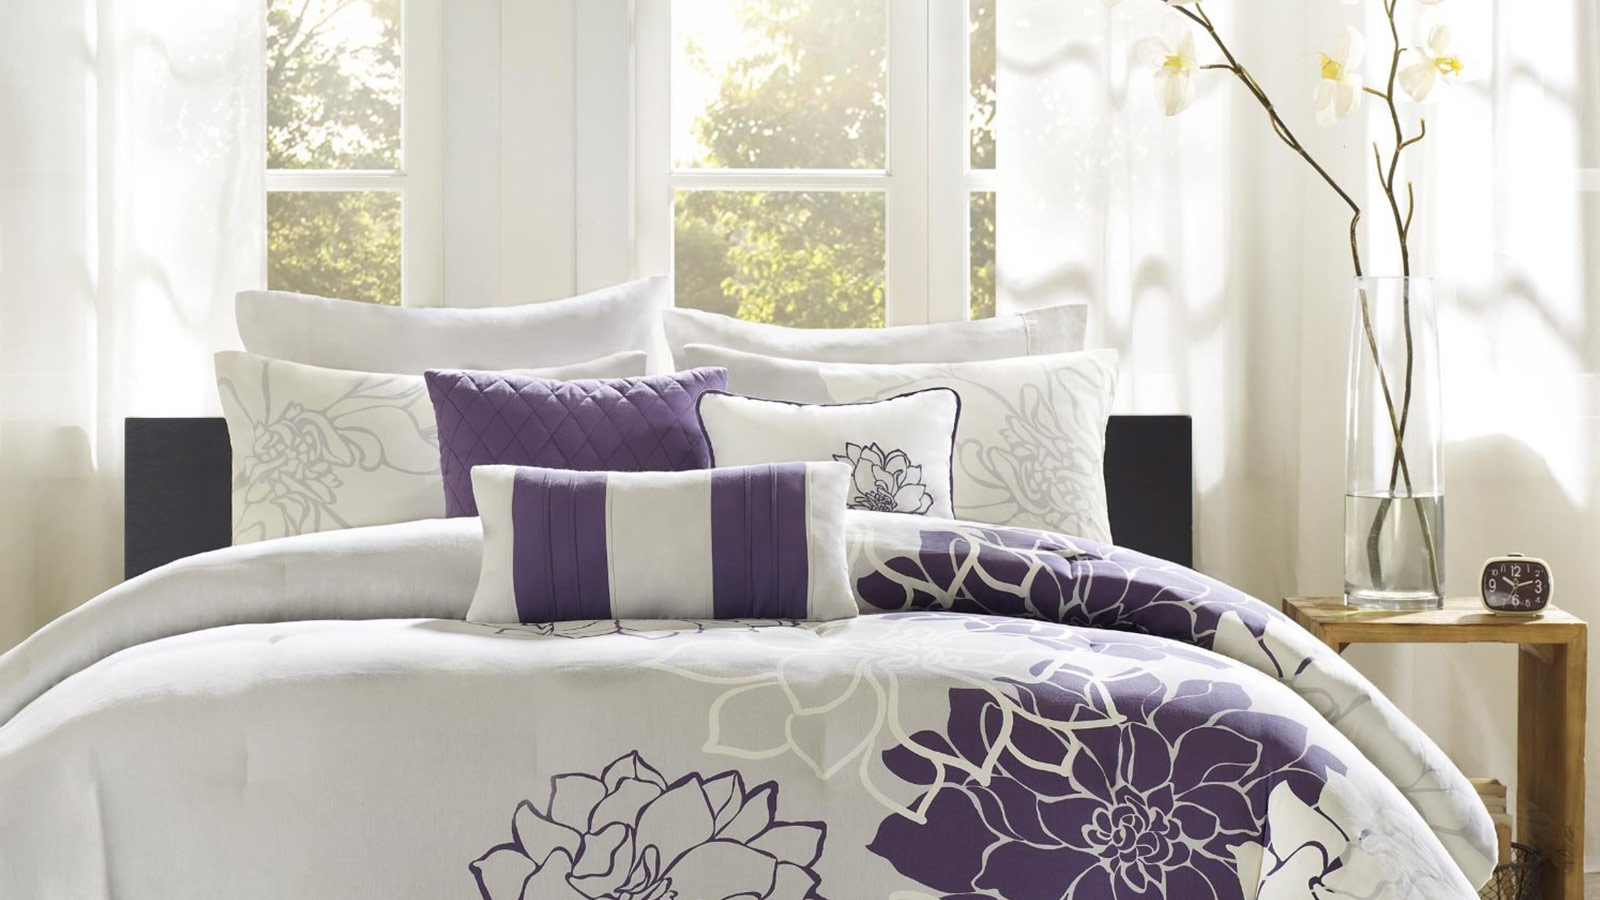 15 Modern comforter sets to give your bedroom a fresh new look ...